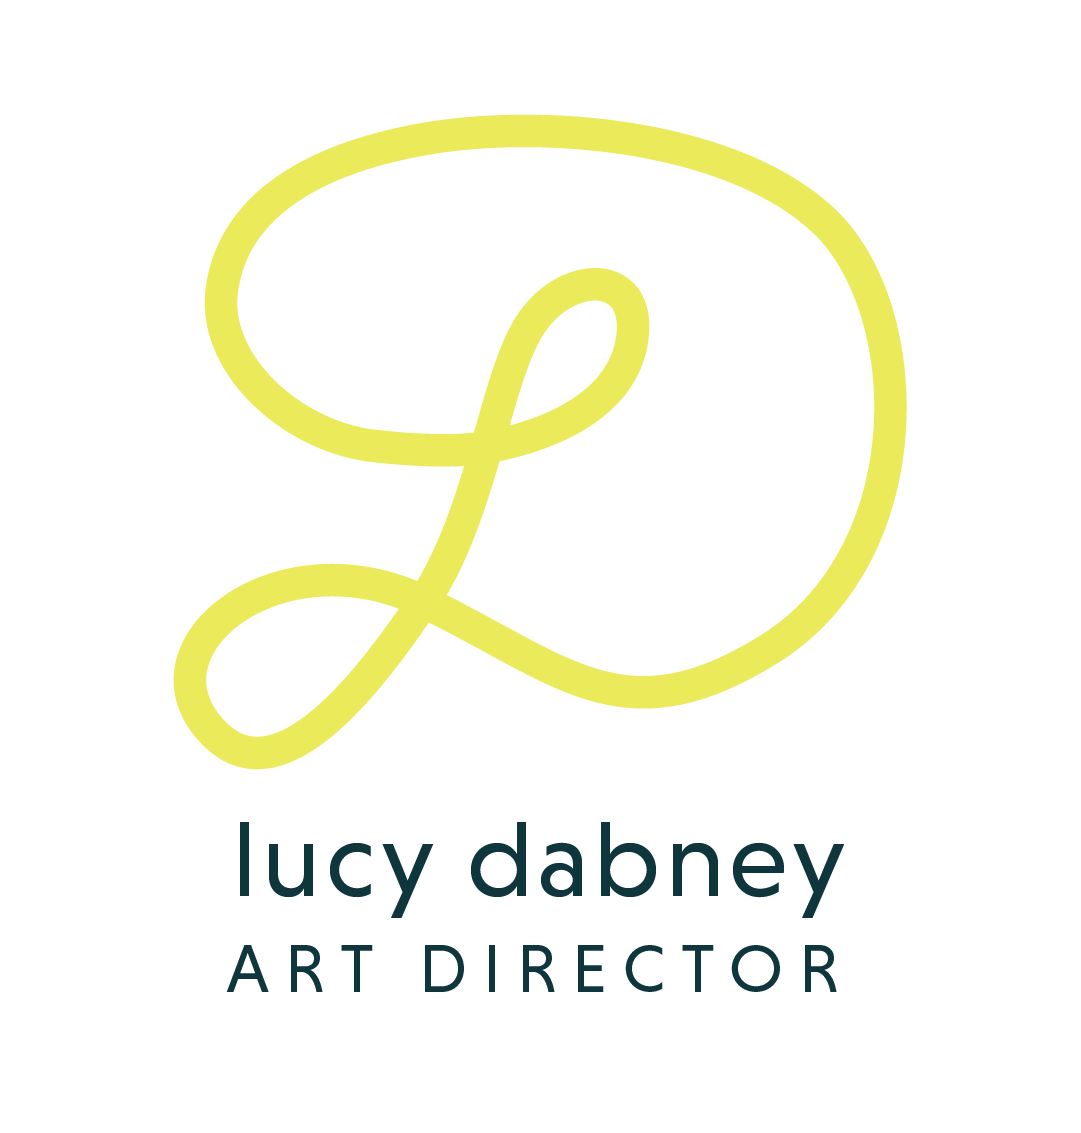 lucy dabney work resume